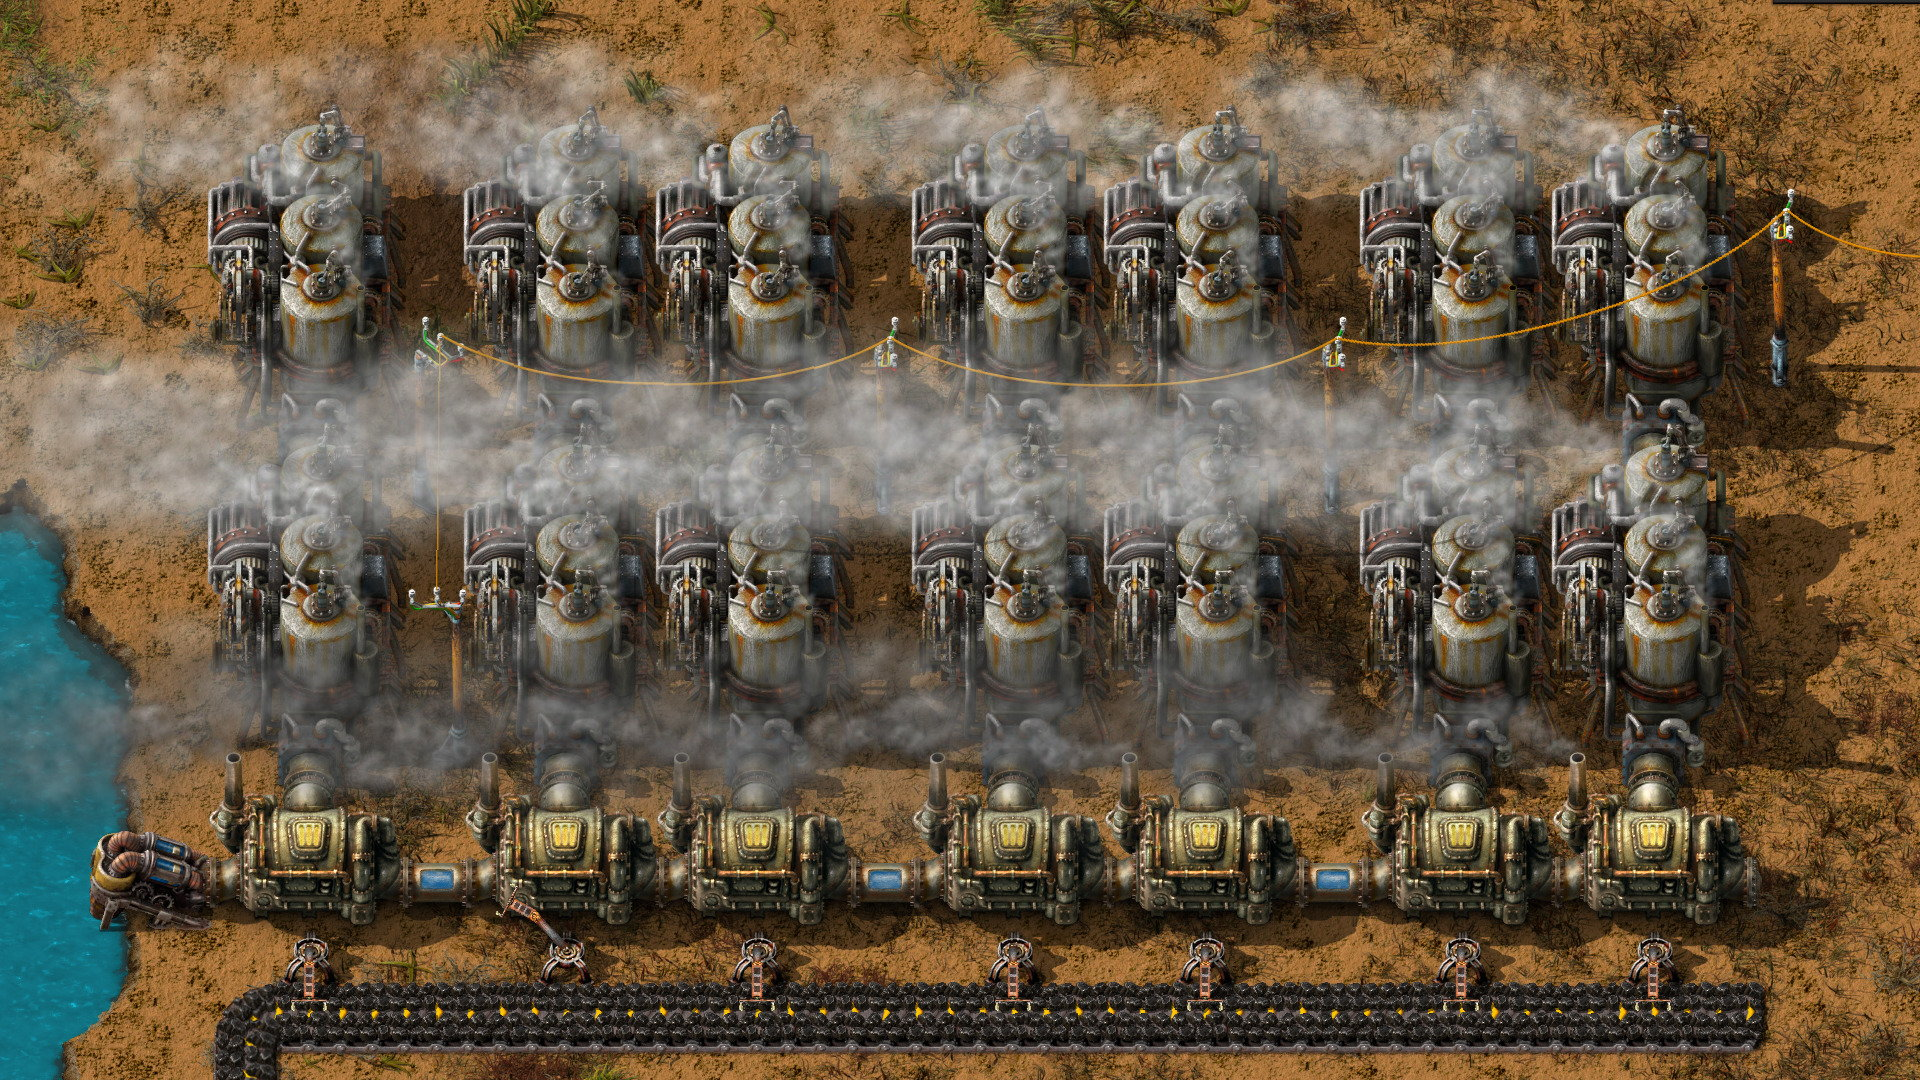 A line of engines belching out smoke in a Factorio screenshot